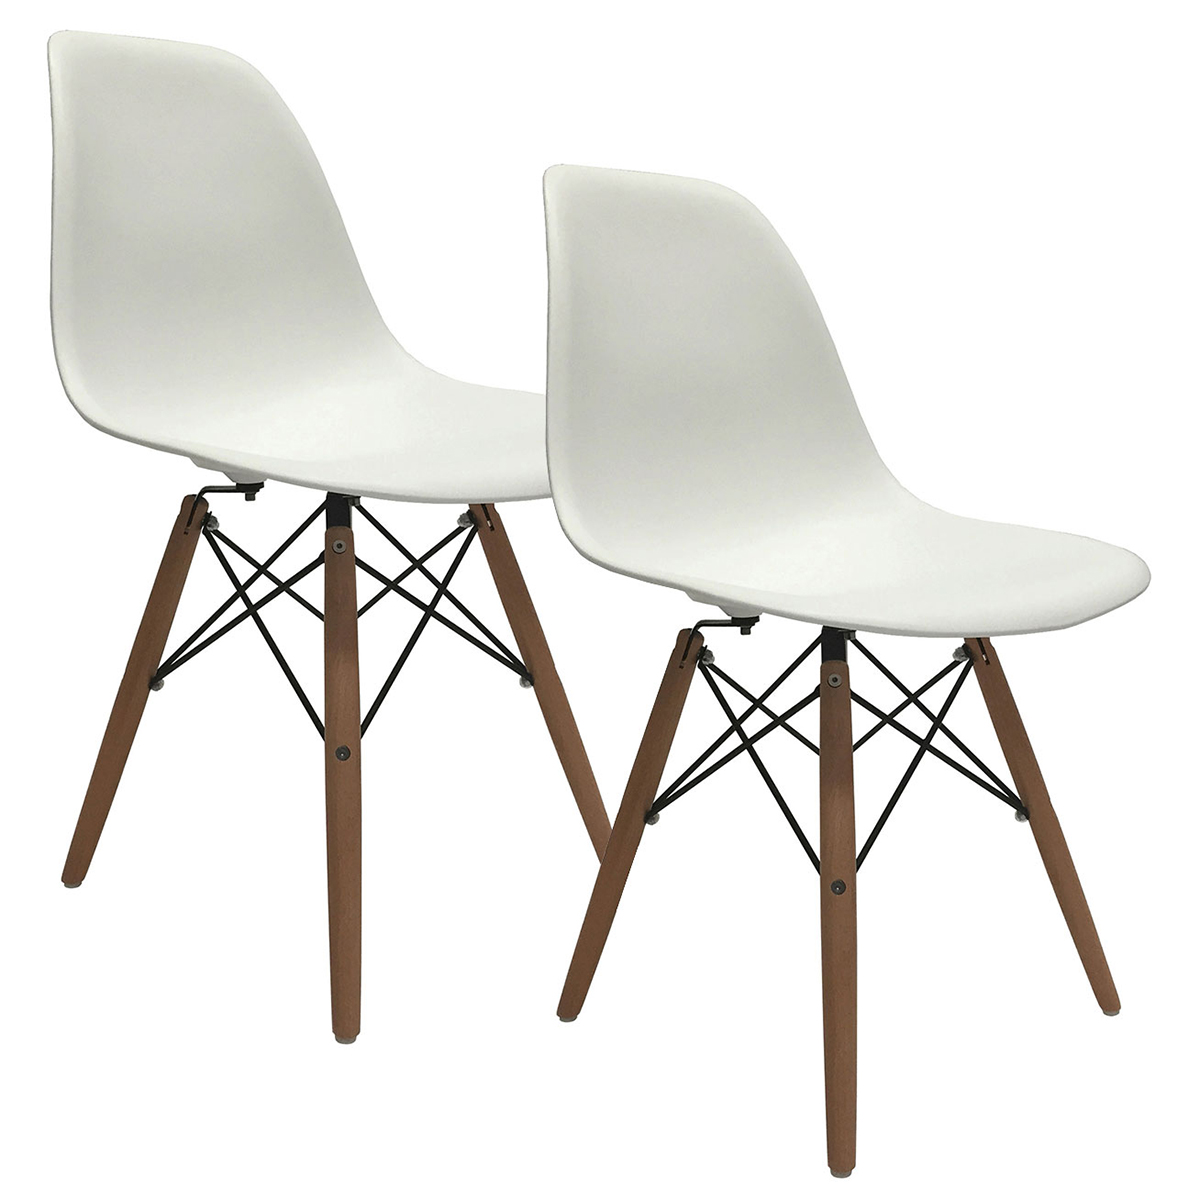 set of 2 eiffel molded plastic side dining chairs eames dsw replica